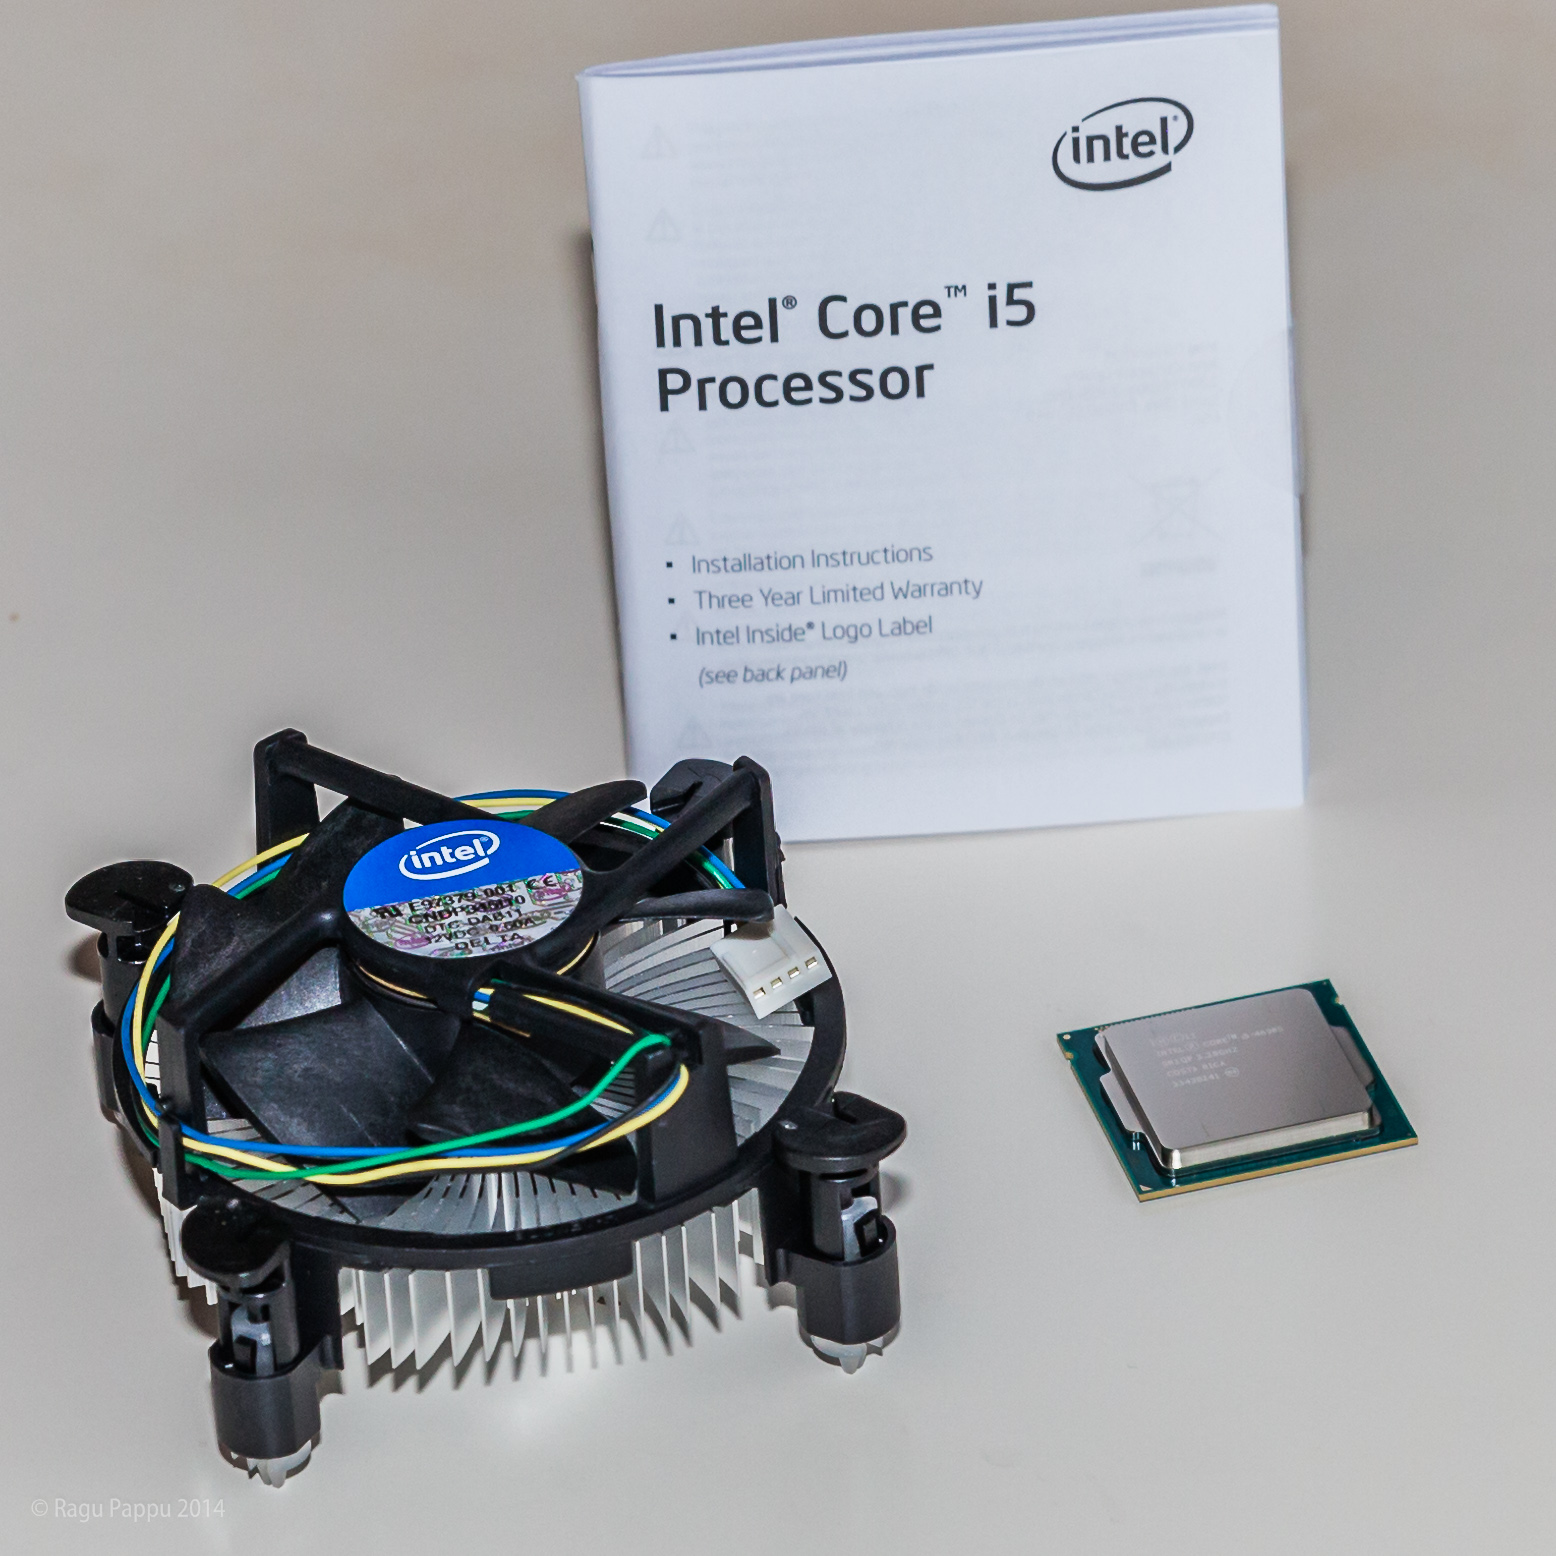 Parts inside Intel Core i5 CPU box